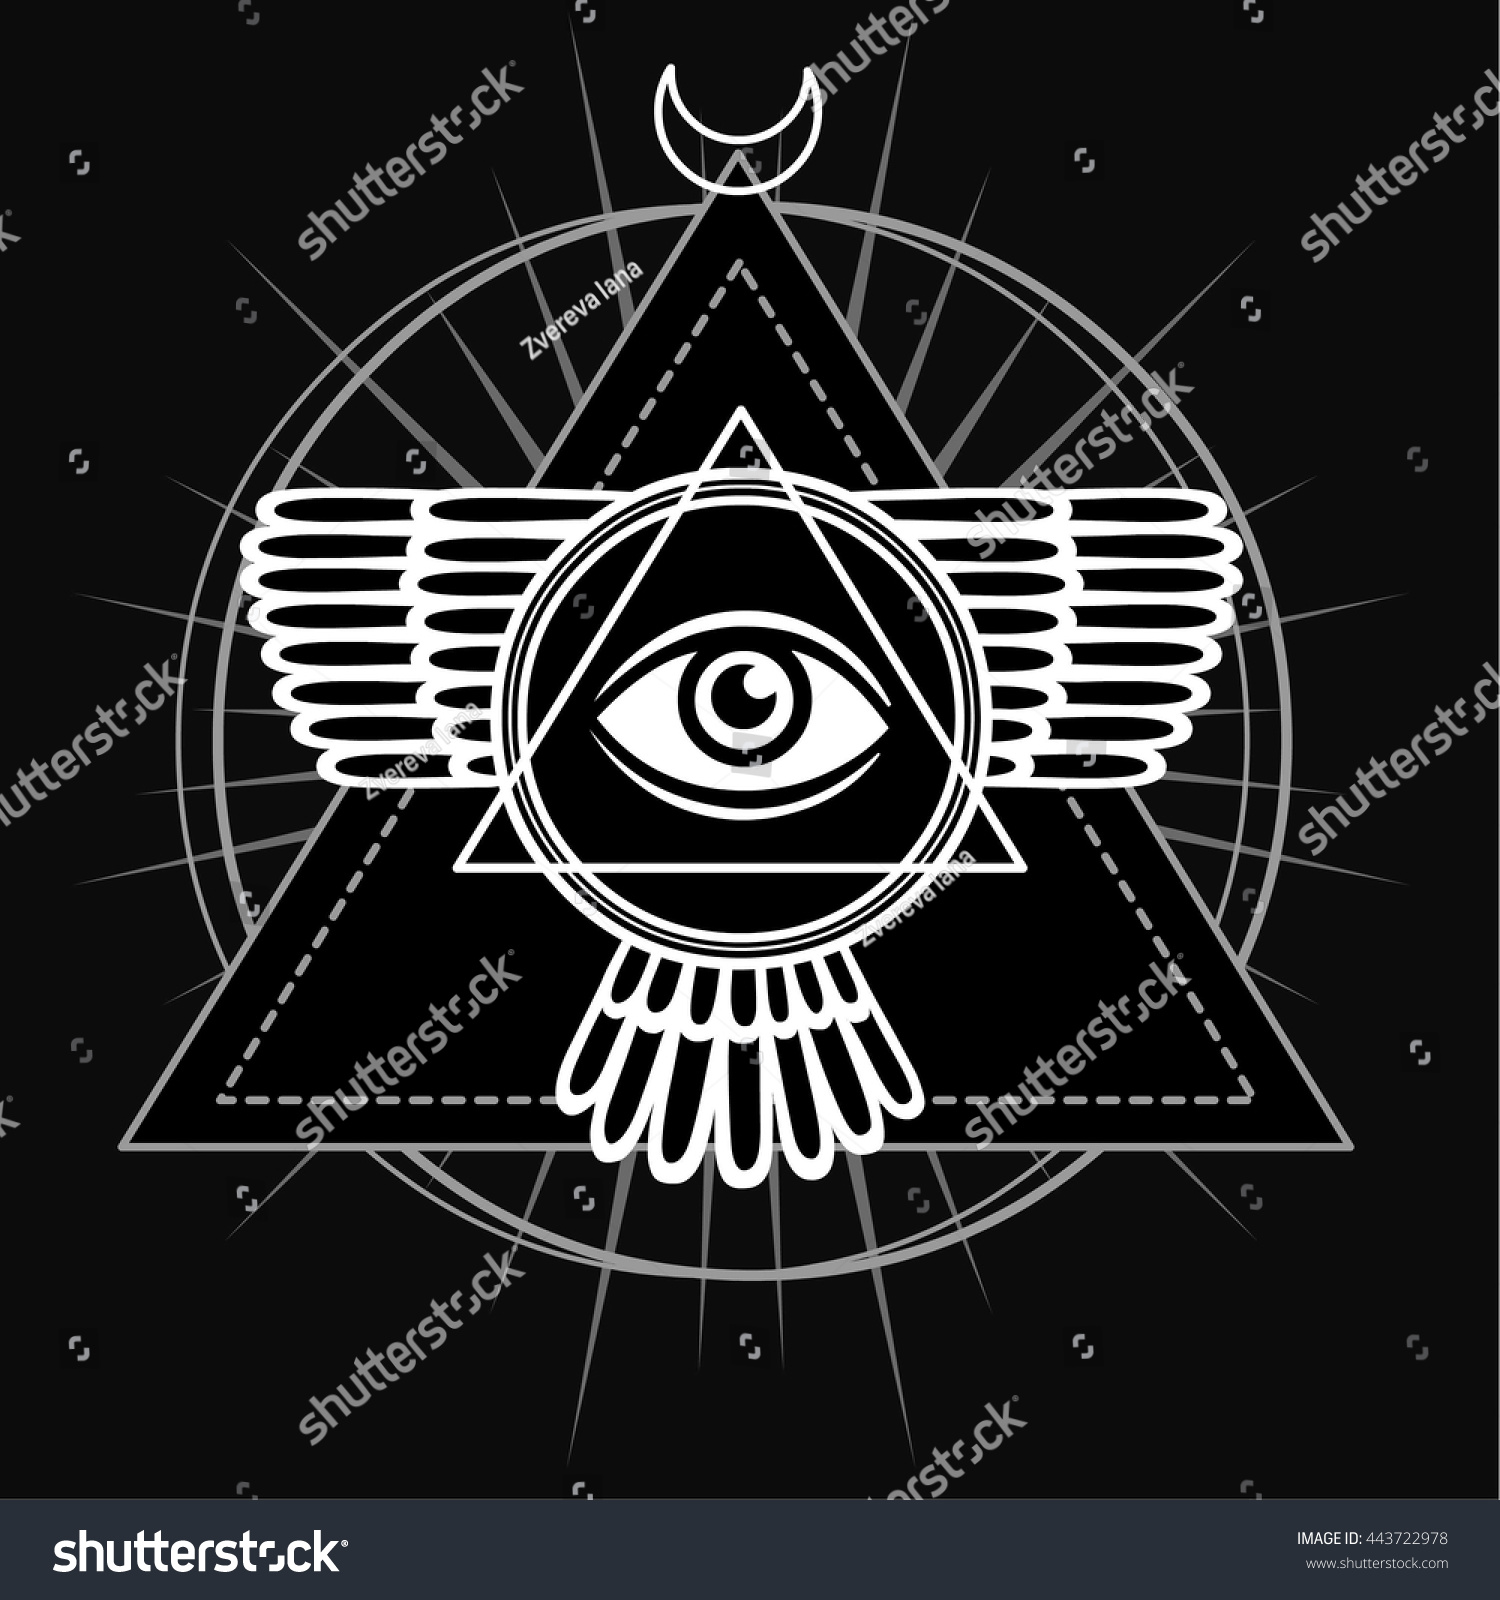 Esoteric symbol winged pyramid knowledge eye stock vector esoteric symbol winged pyramid knowledge eye sacred geometry the monochrome drawing isolated biocorpaavc Image collections